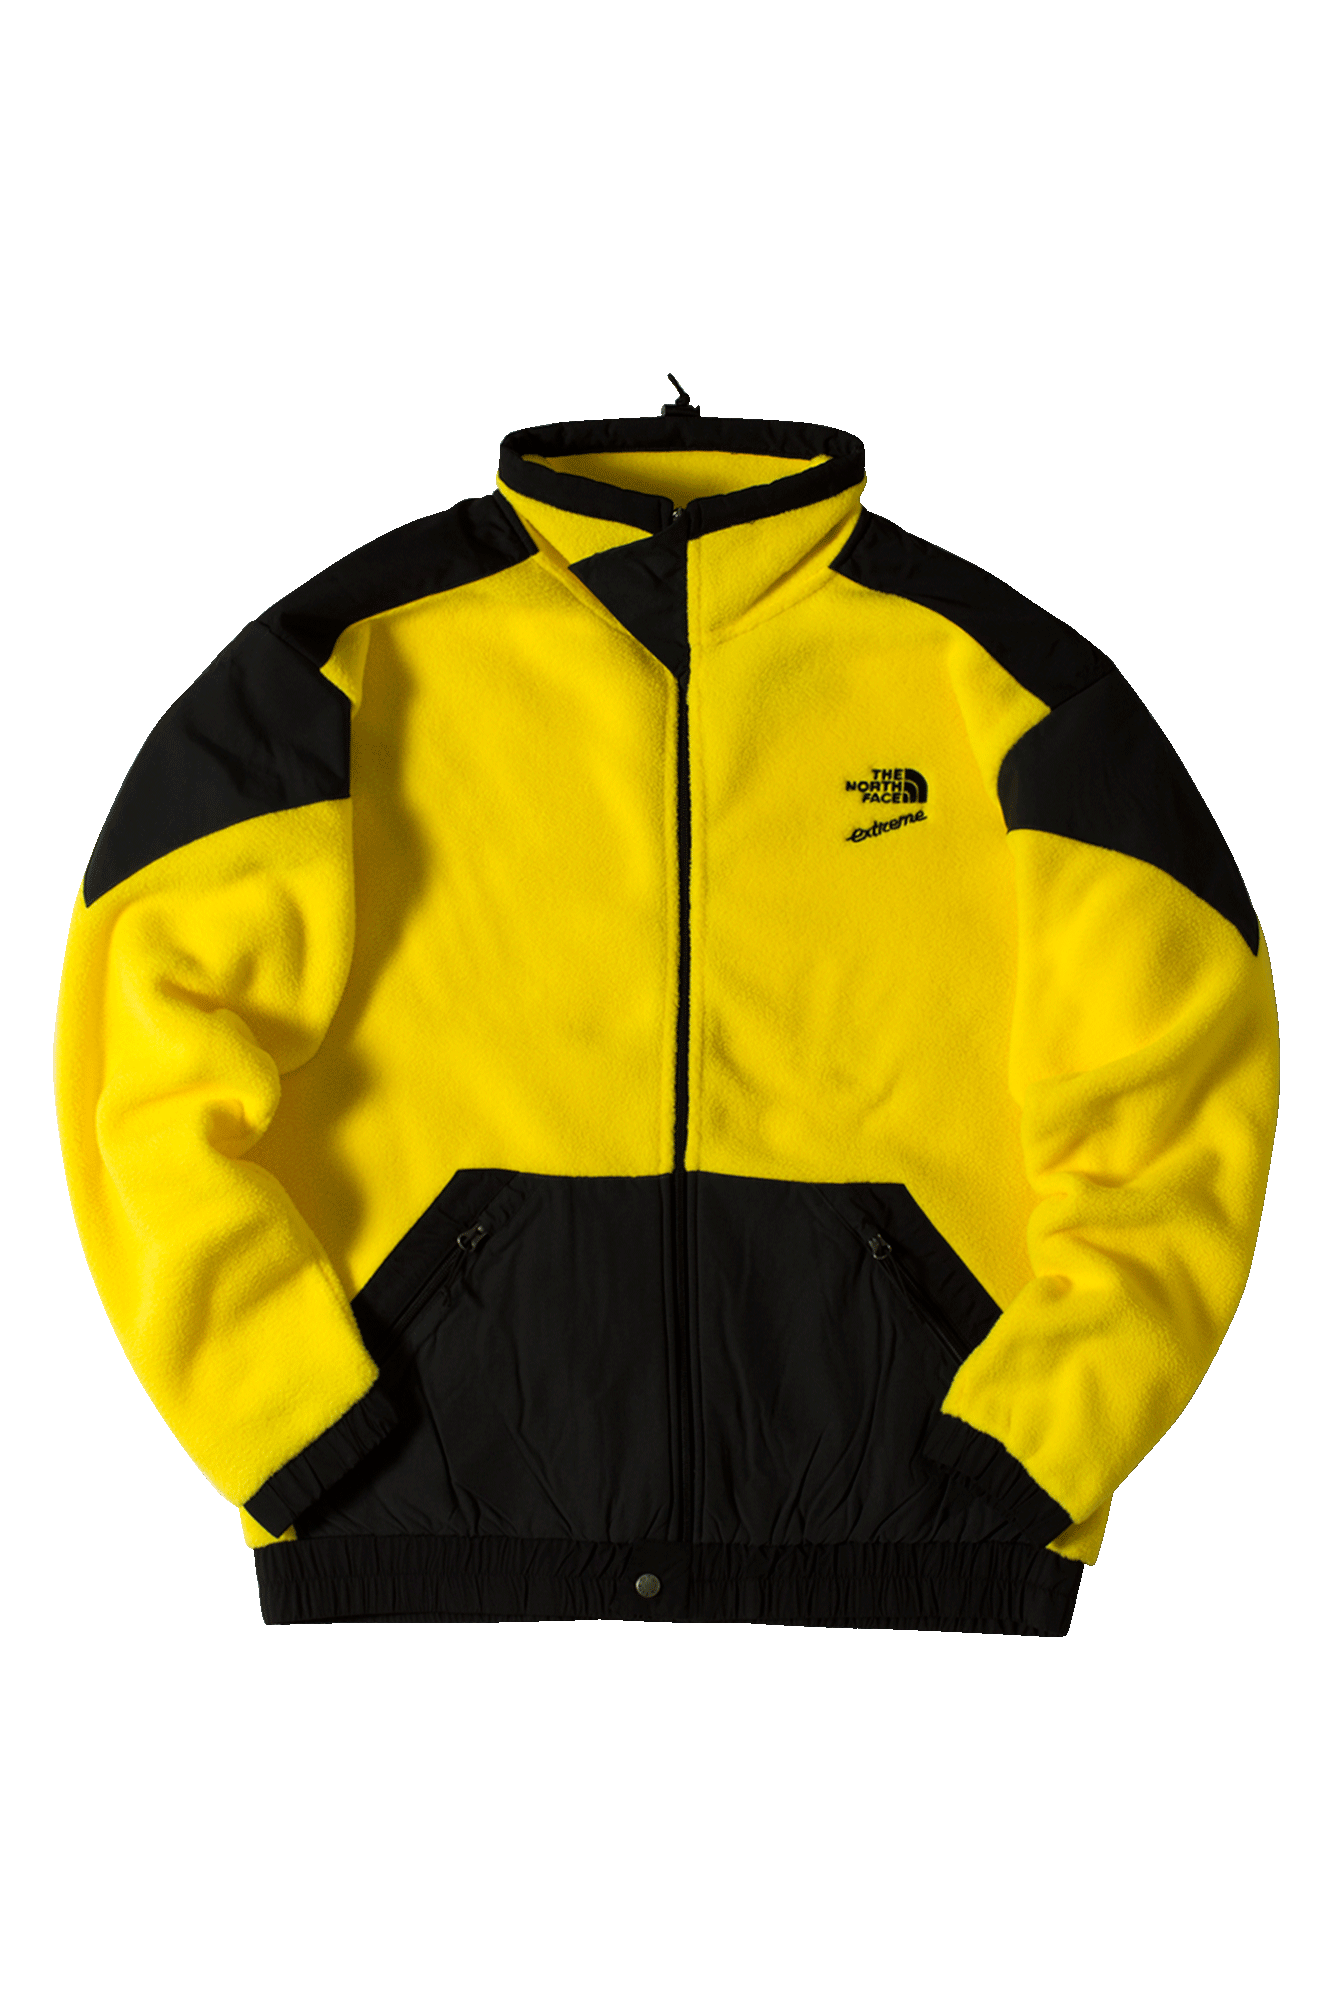 90 Extreme Fleece FZ Zip-Up Sweatshirt Giallo